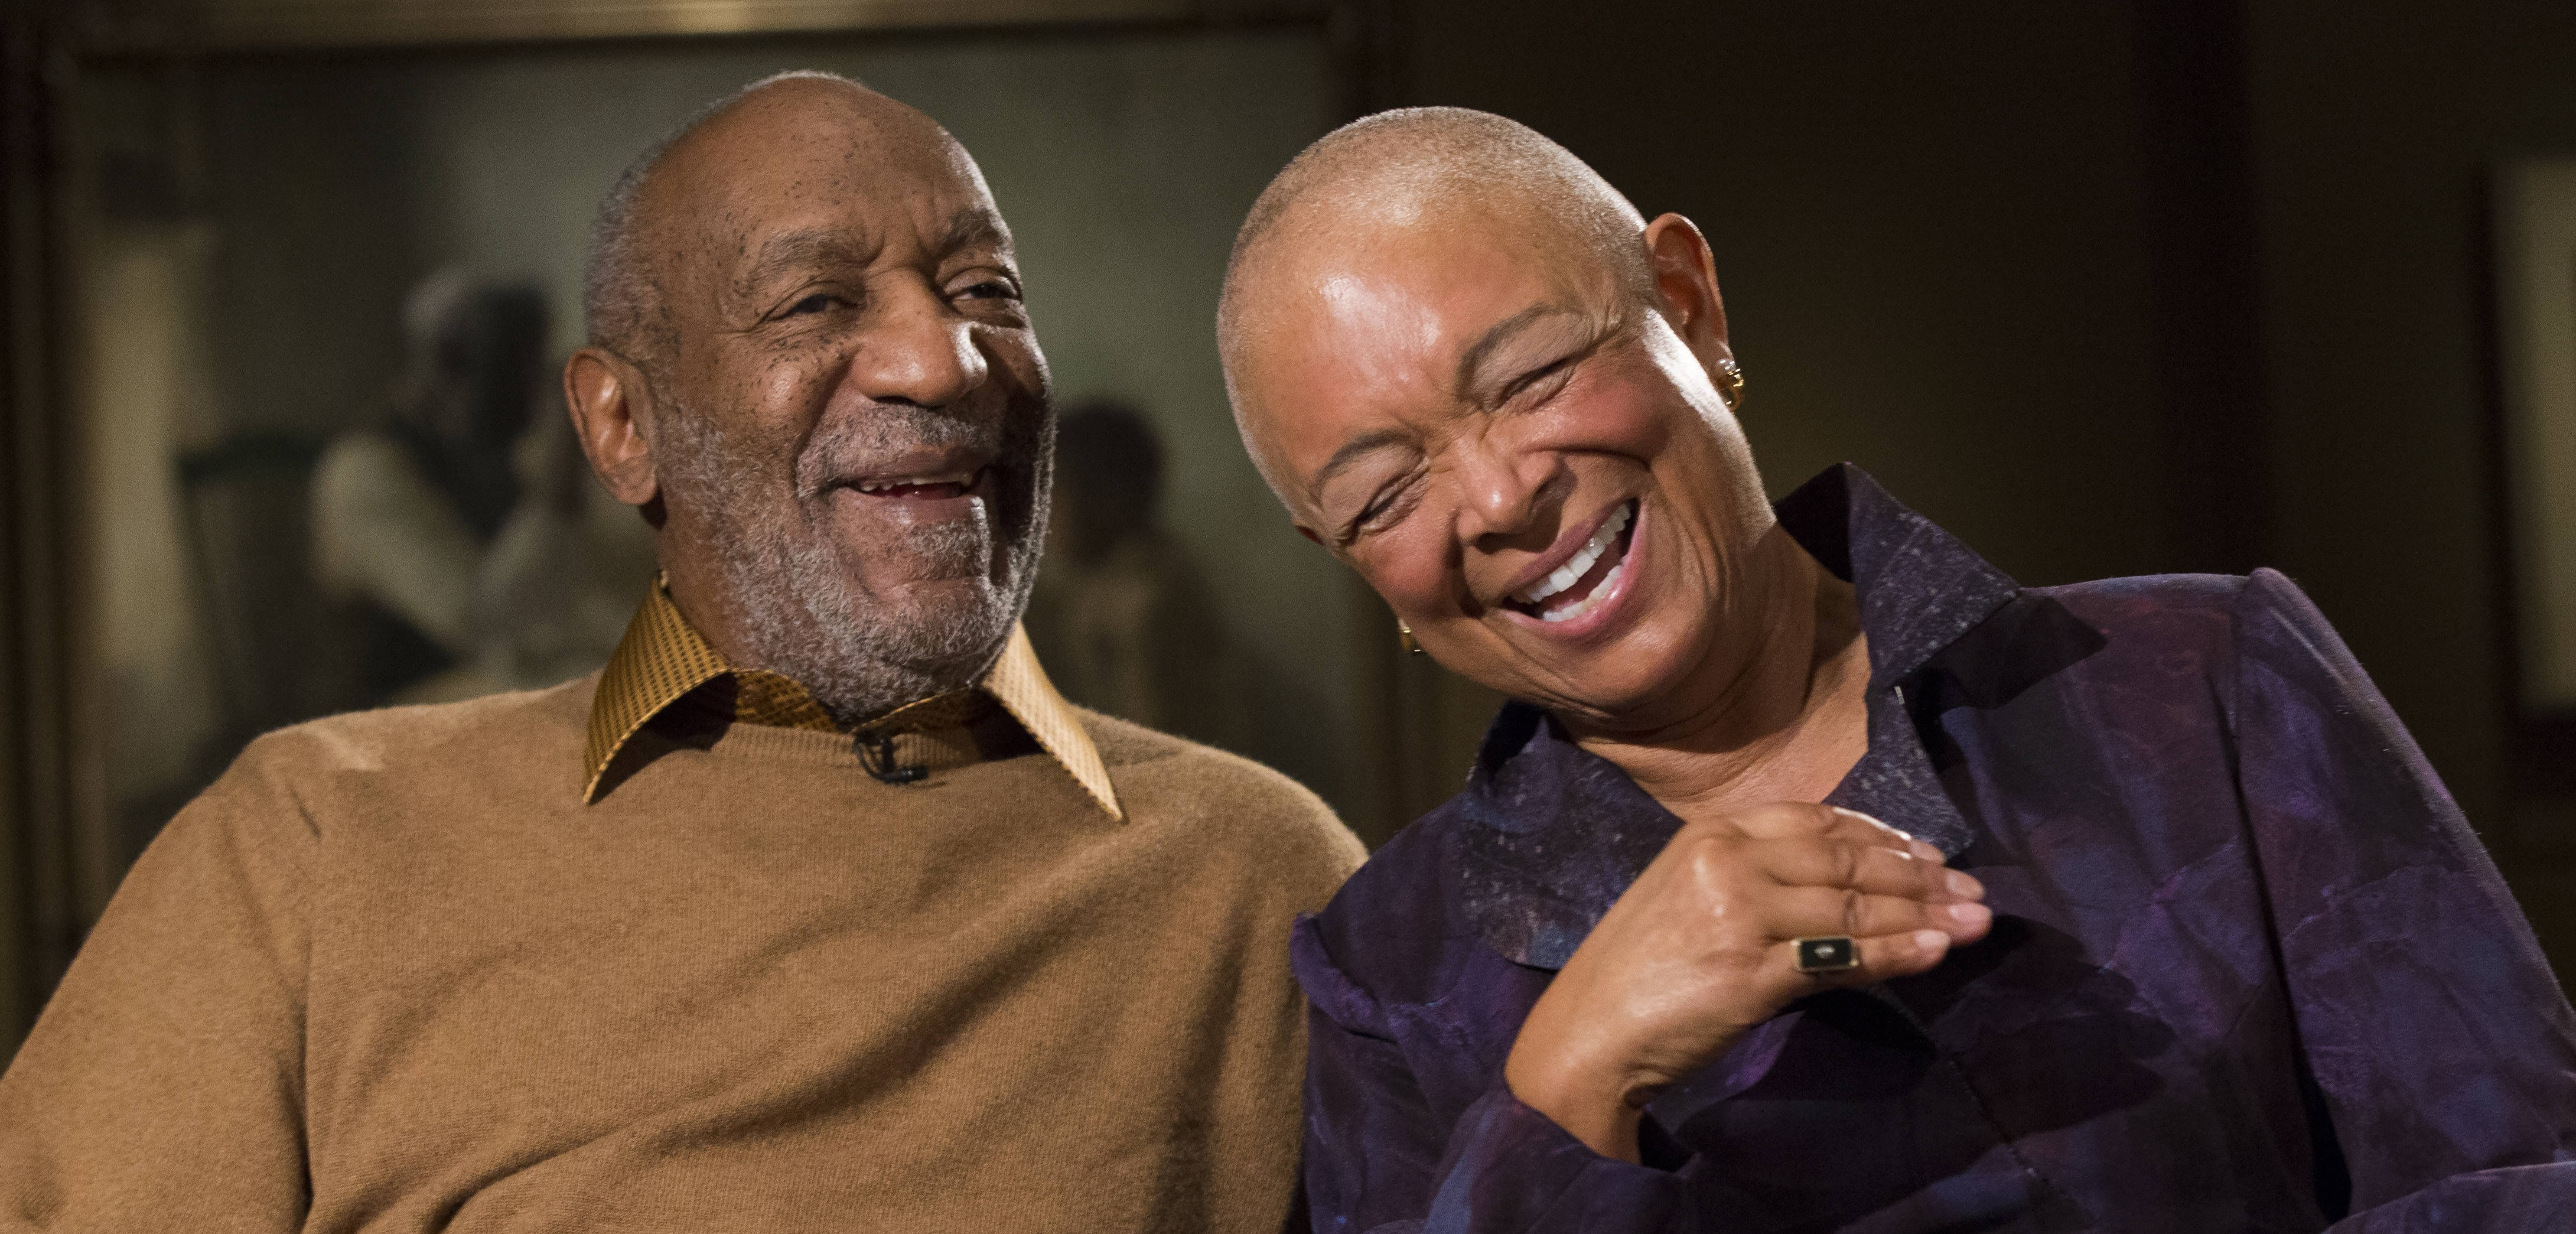 bill cosby has support of two wives american urban radio